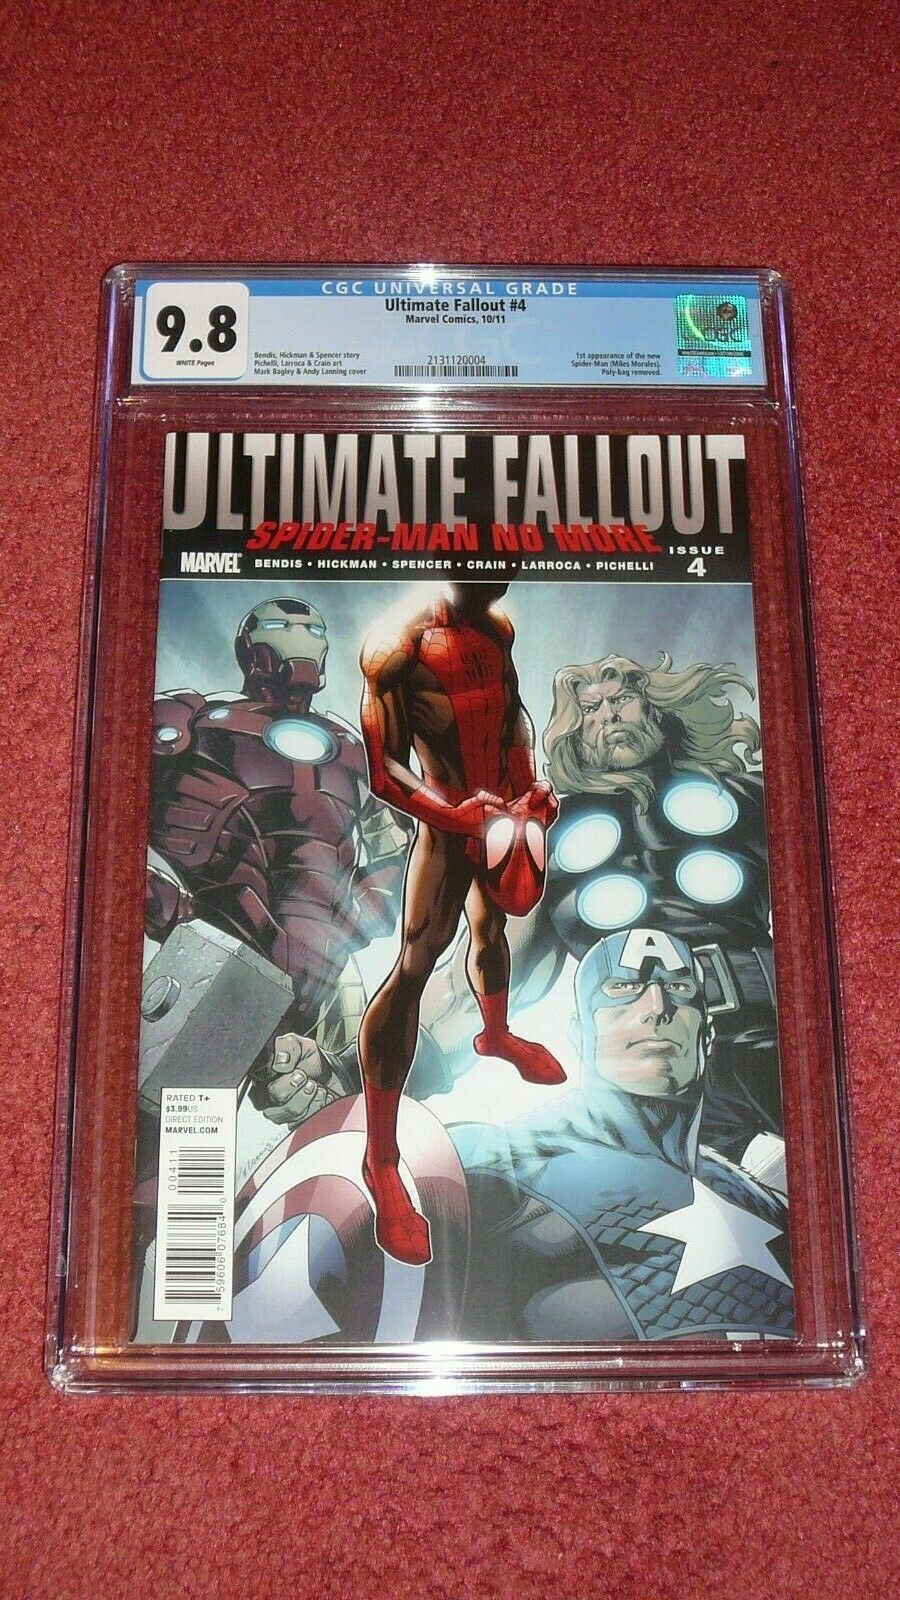 ULTIMATE FALLOUT 4 1st Miles Morales  CGC 98 White Pages Marvel 2011